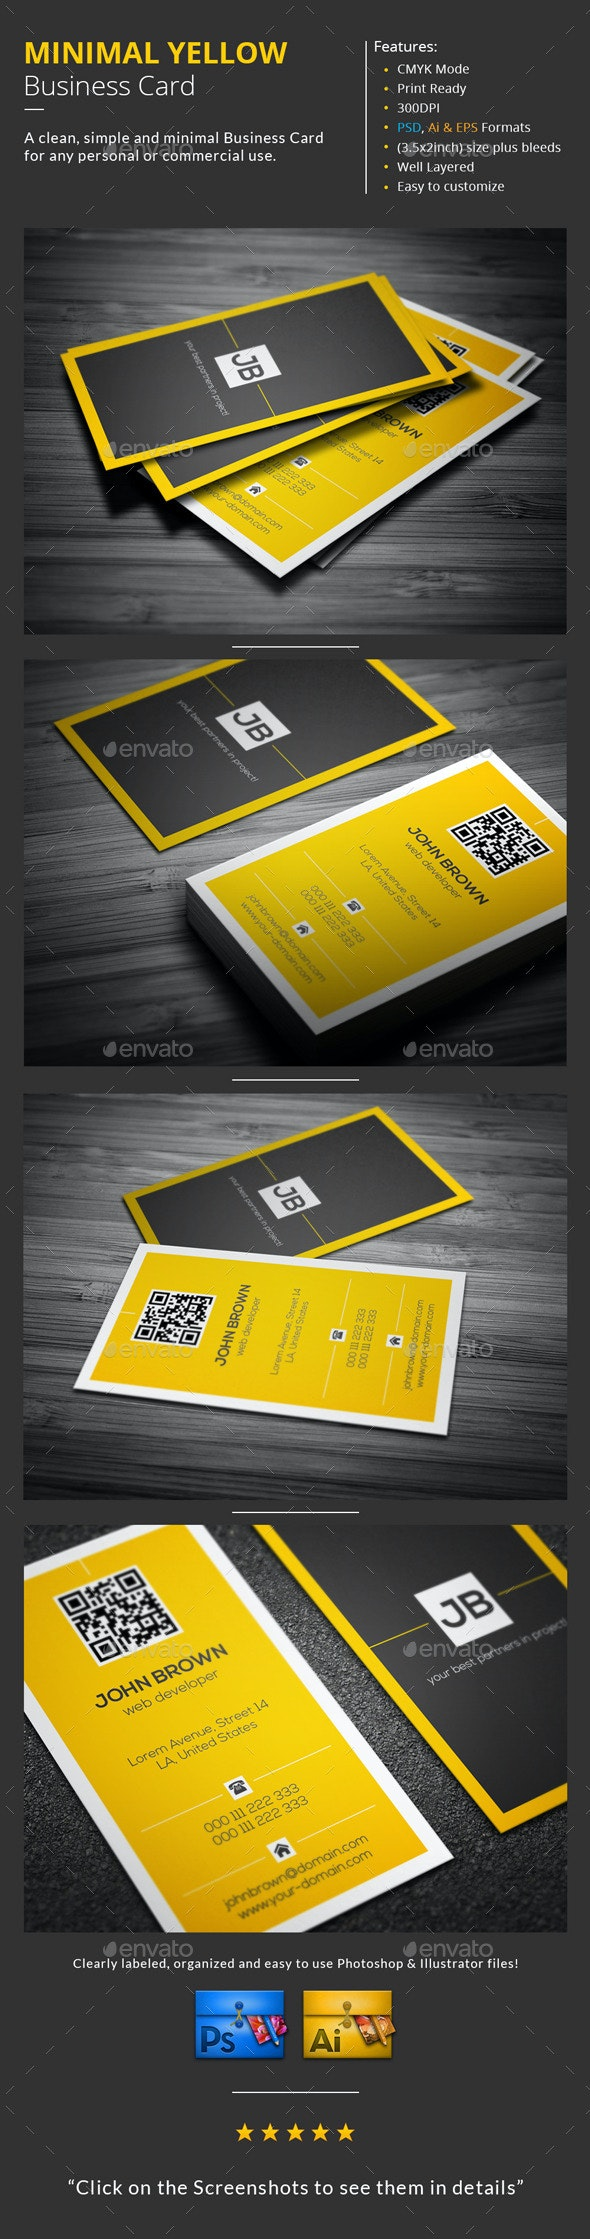 Minimal Yellow Business Card - Creative Business Cards